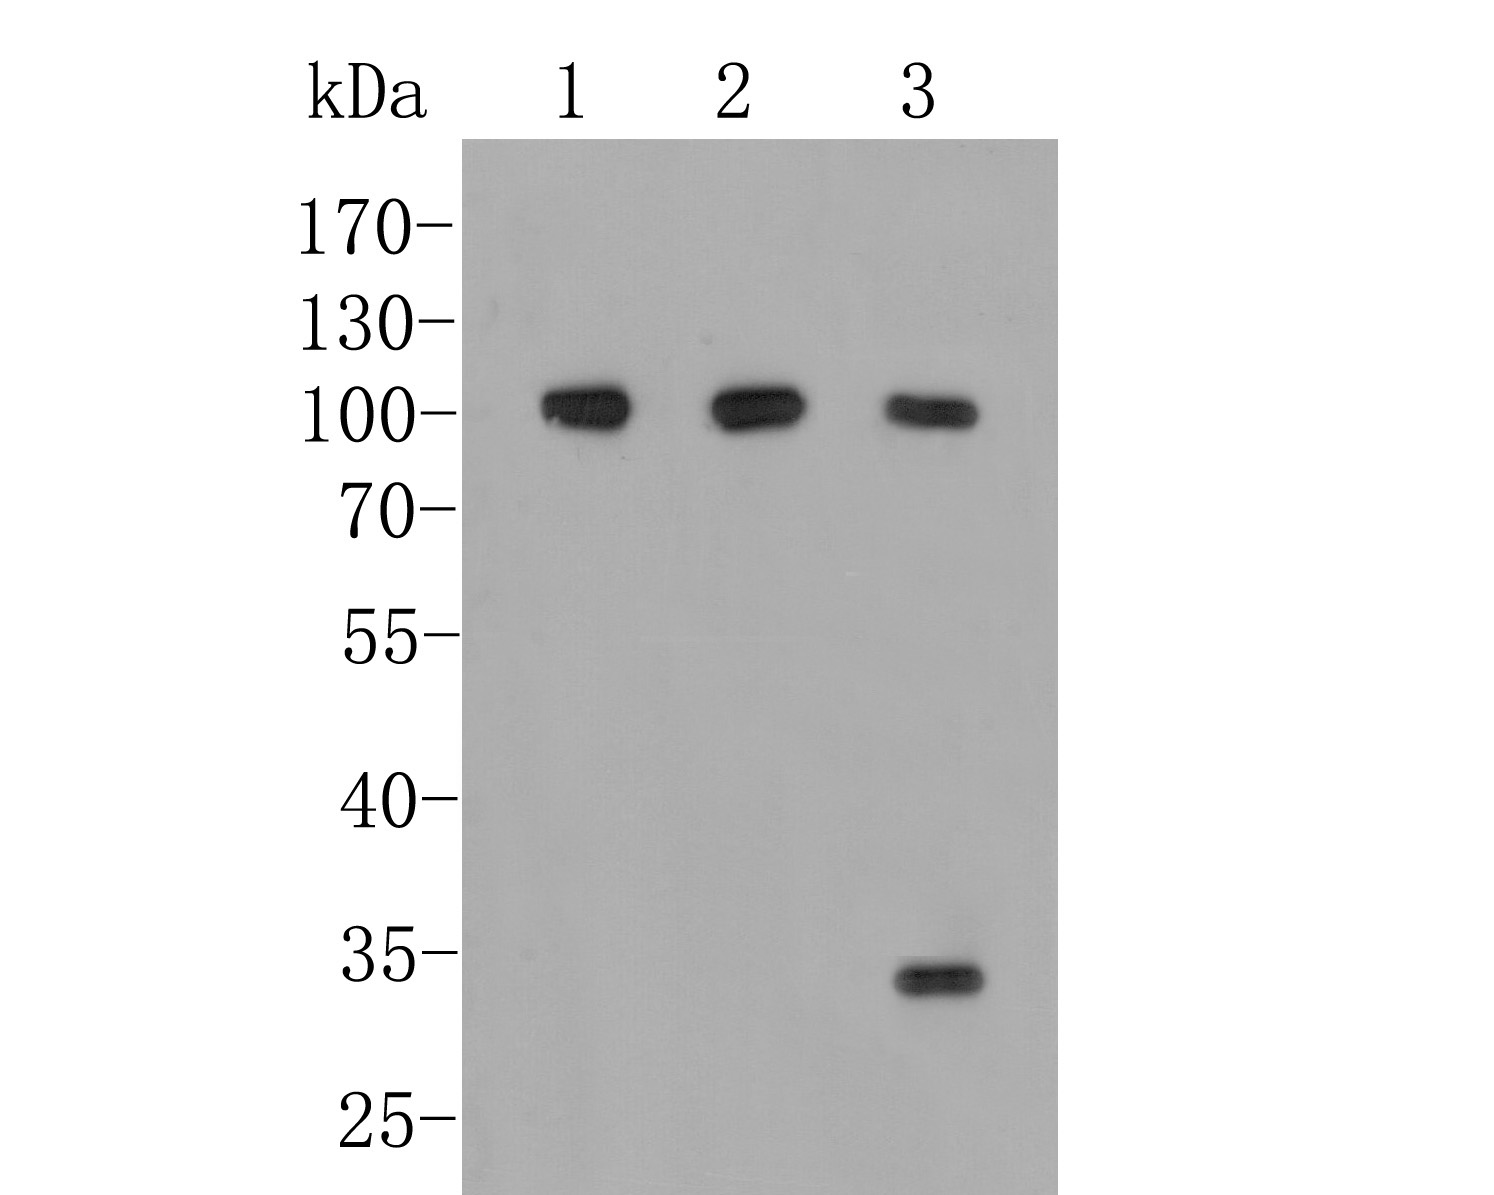 Western blot analysis of CD166 on different lysates. Proteins were transferred to a PVDF membrane and blocked with 5% BSA in PBS for 1 hour at room temperature. The primary antibody (M1012-7, 1/500) was used in 5% BSA at room temperature for 2 hours. Goat Anti-Mouse IgG - HRP Secondary Antibody (HA1006) at 1:5,000 dilution was used for 1 hour at room temperature.<br /> Positive control: <br /> Lane 1: PC-3M cell lysate<br /> Lane 2: SHSY5Y cell lysate<br /> Lane 3: A549 cell lysate